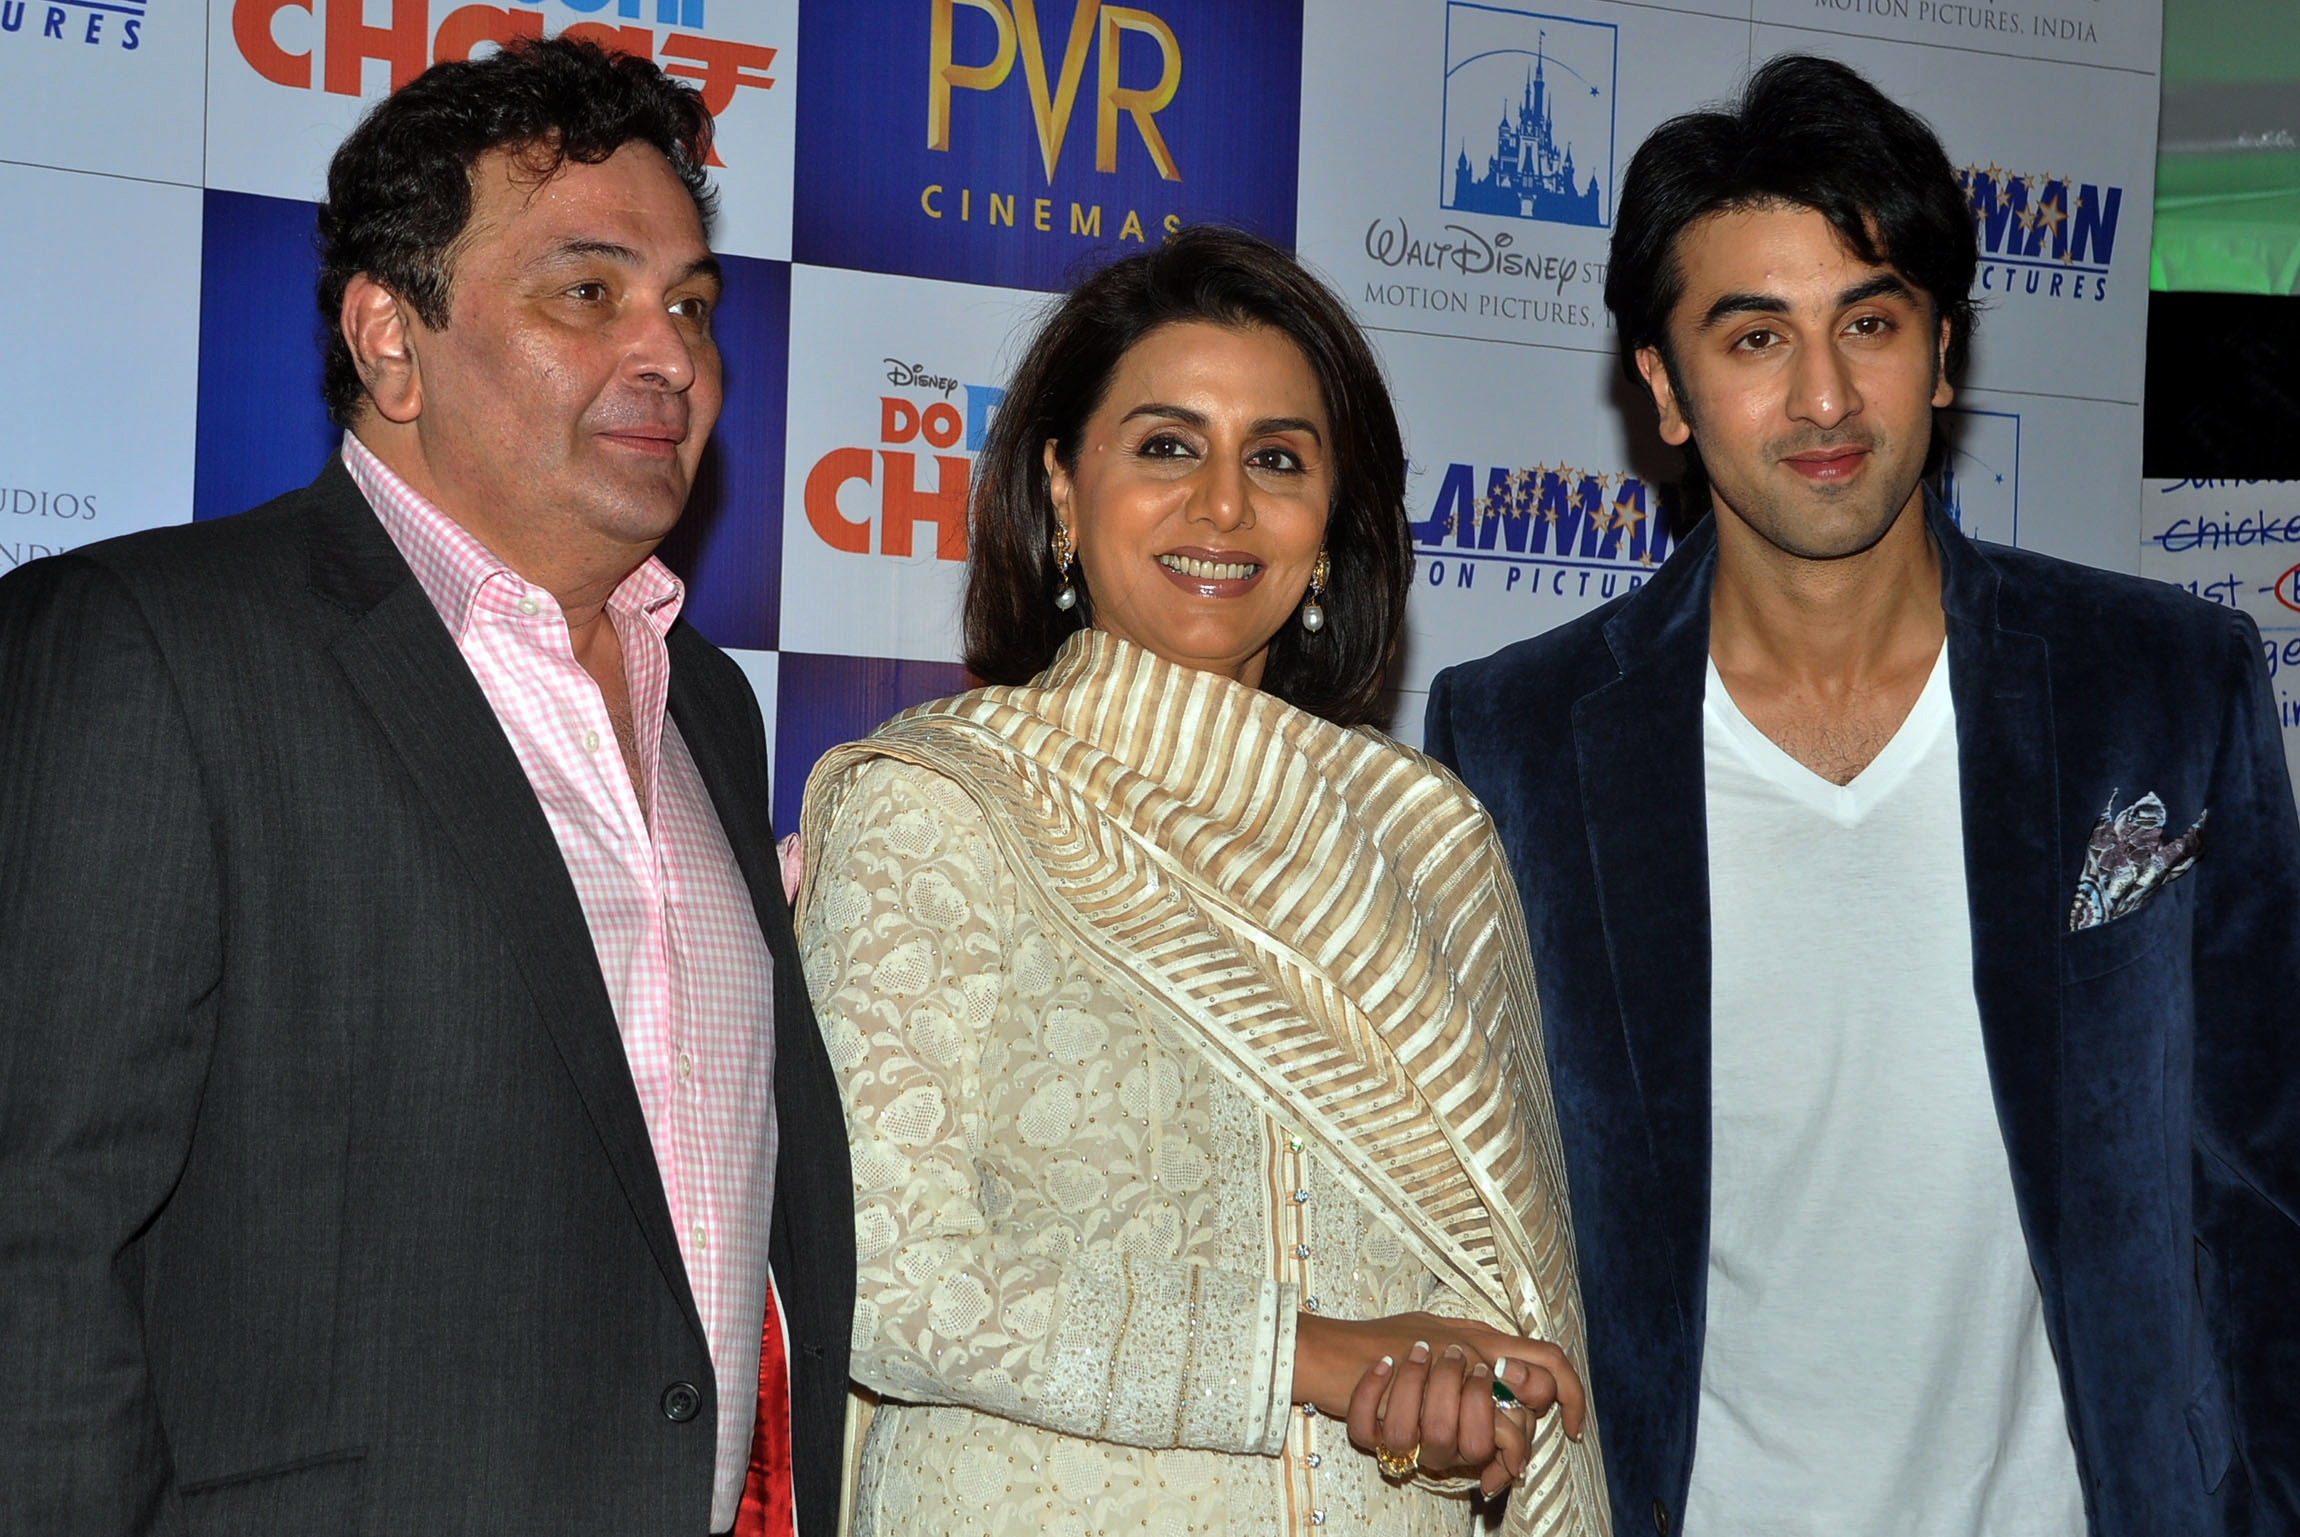 Rishi Kapoor, Neetu Singh, and Ranbir Kapoor at an event for Do Dooni Chaar (2010)